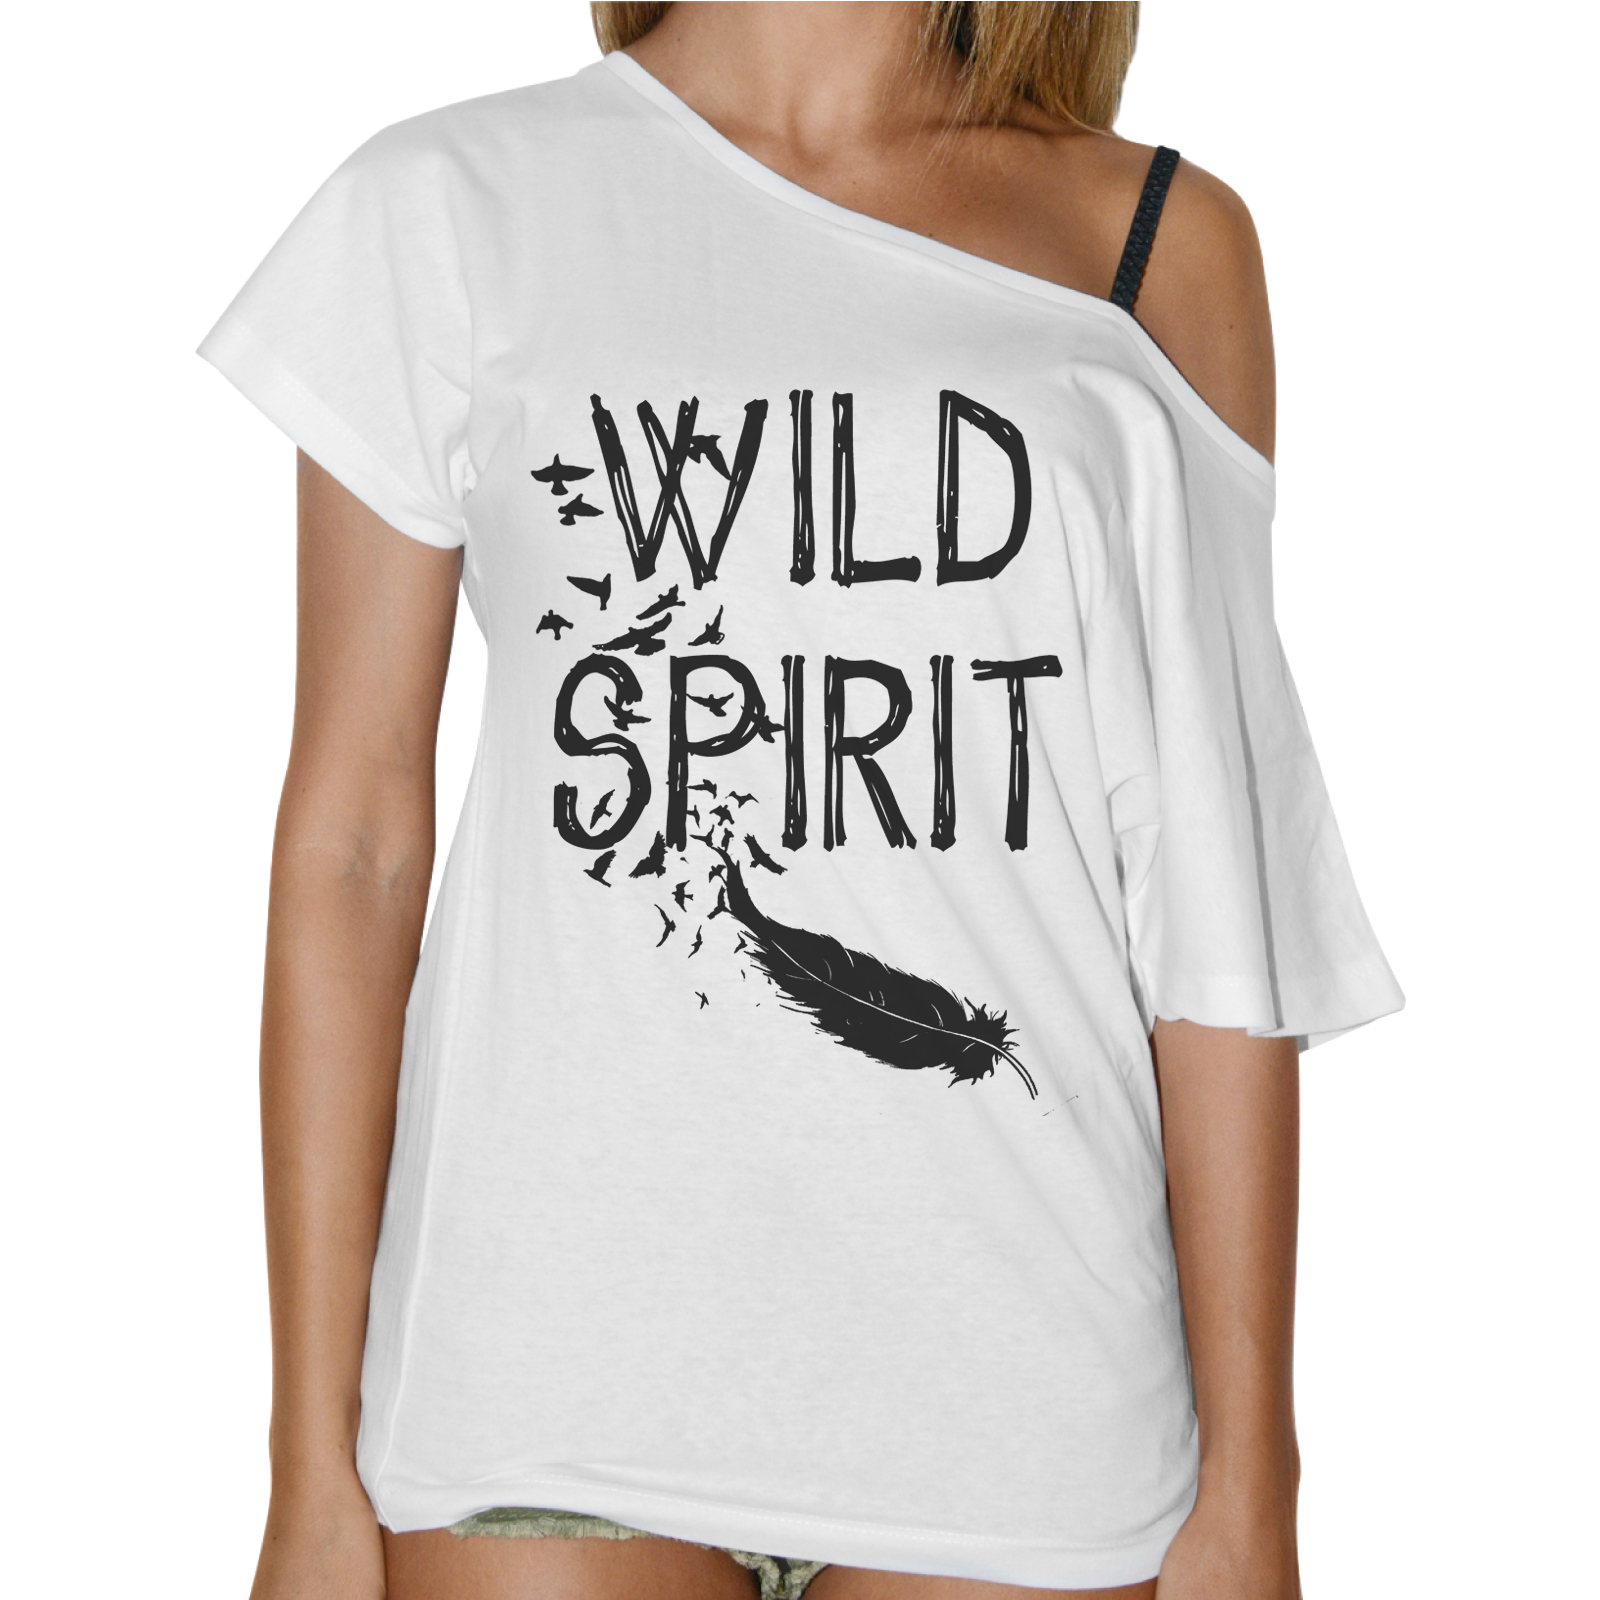 T-Shirt Donna Collo Barca WILD SPIRIT 1